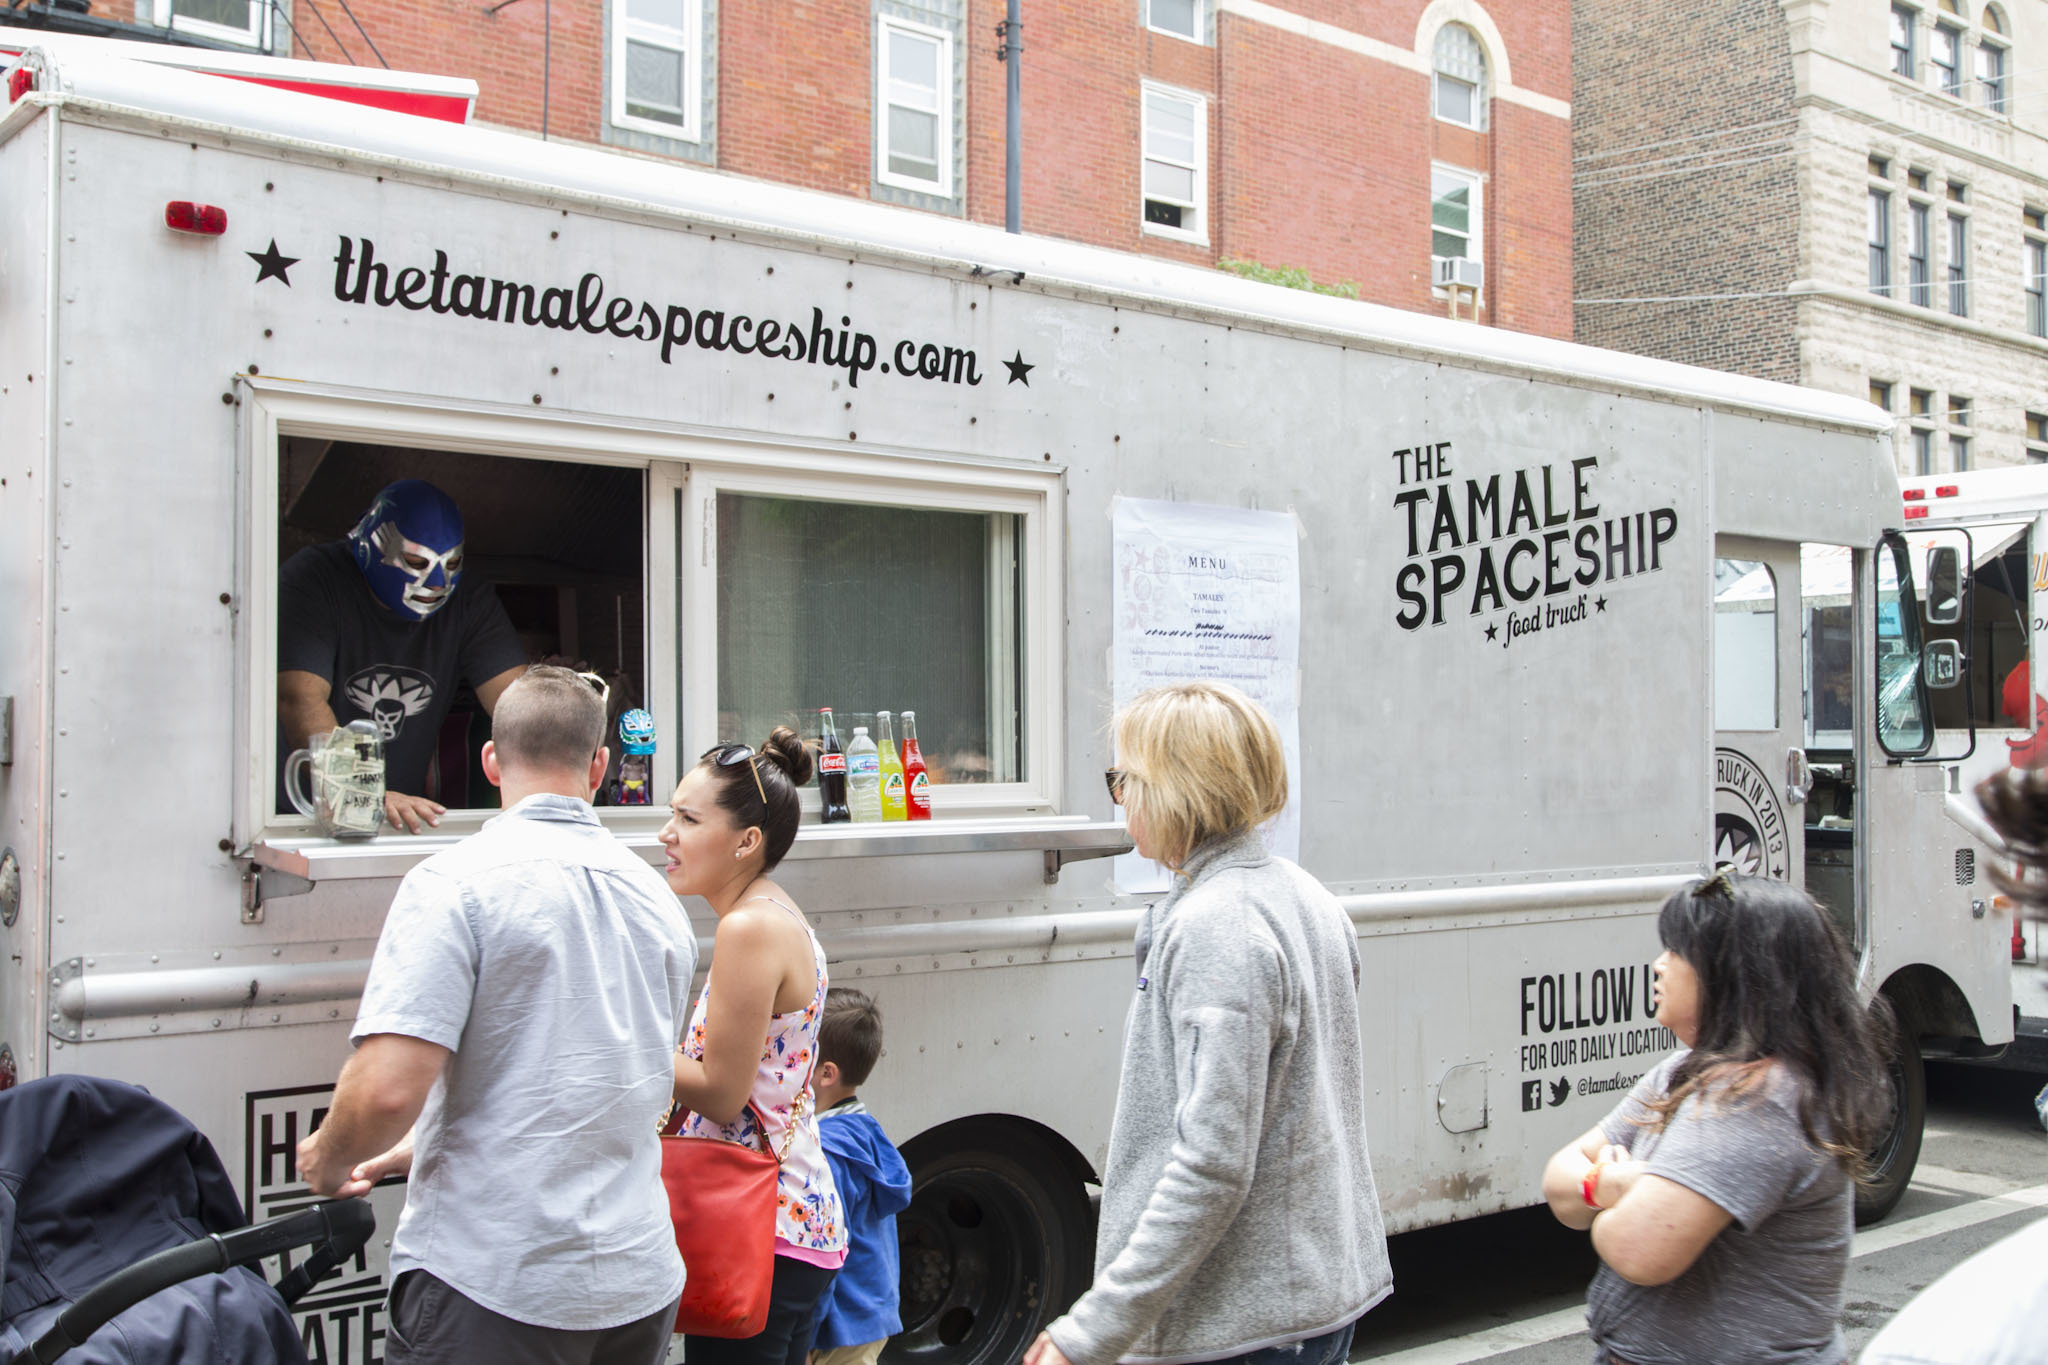 Chicago food trucks get burned by judge's ruling